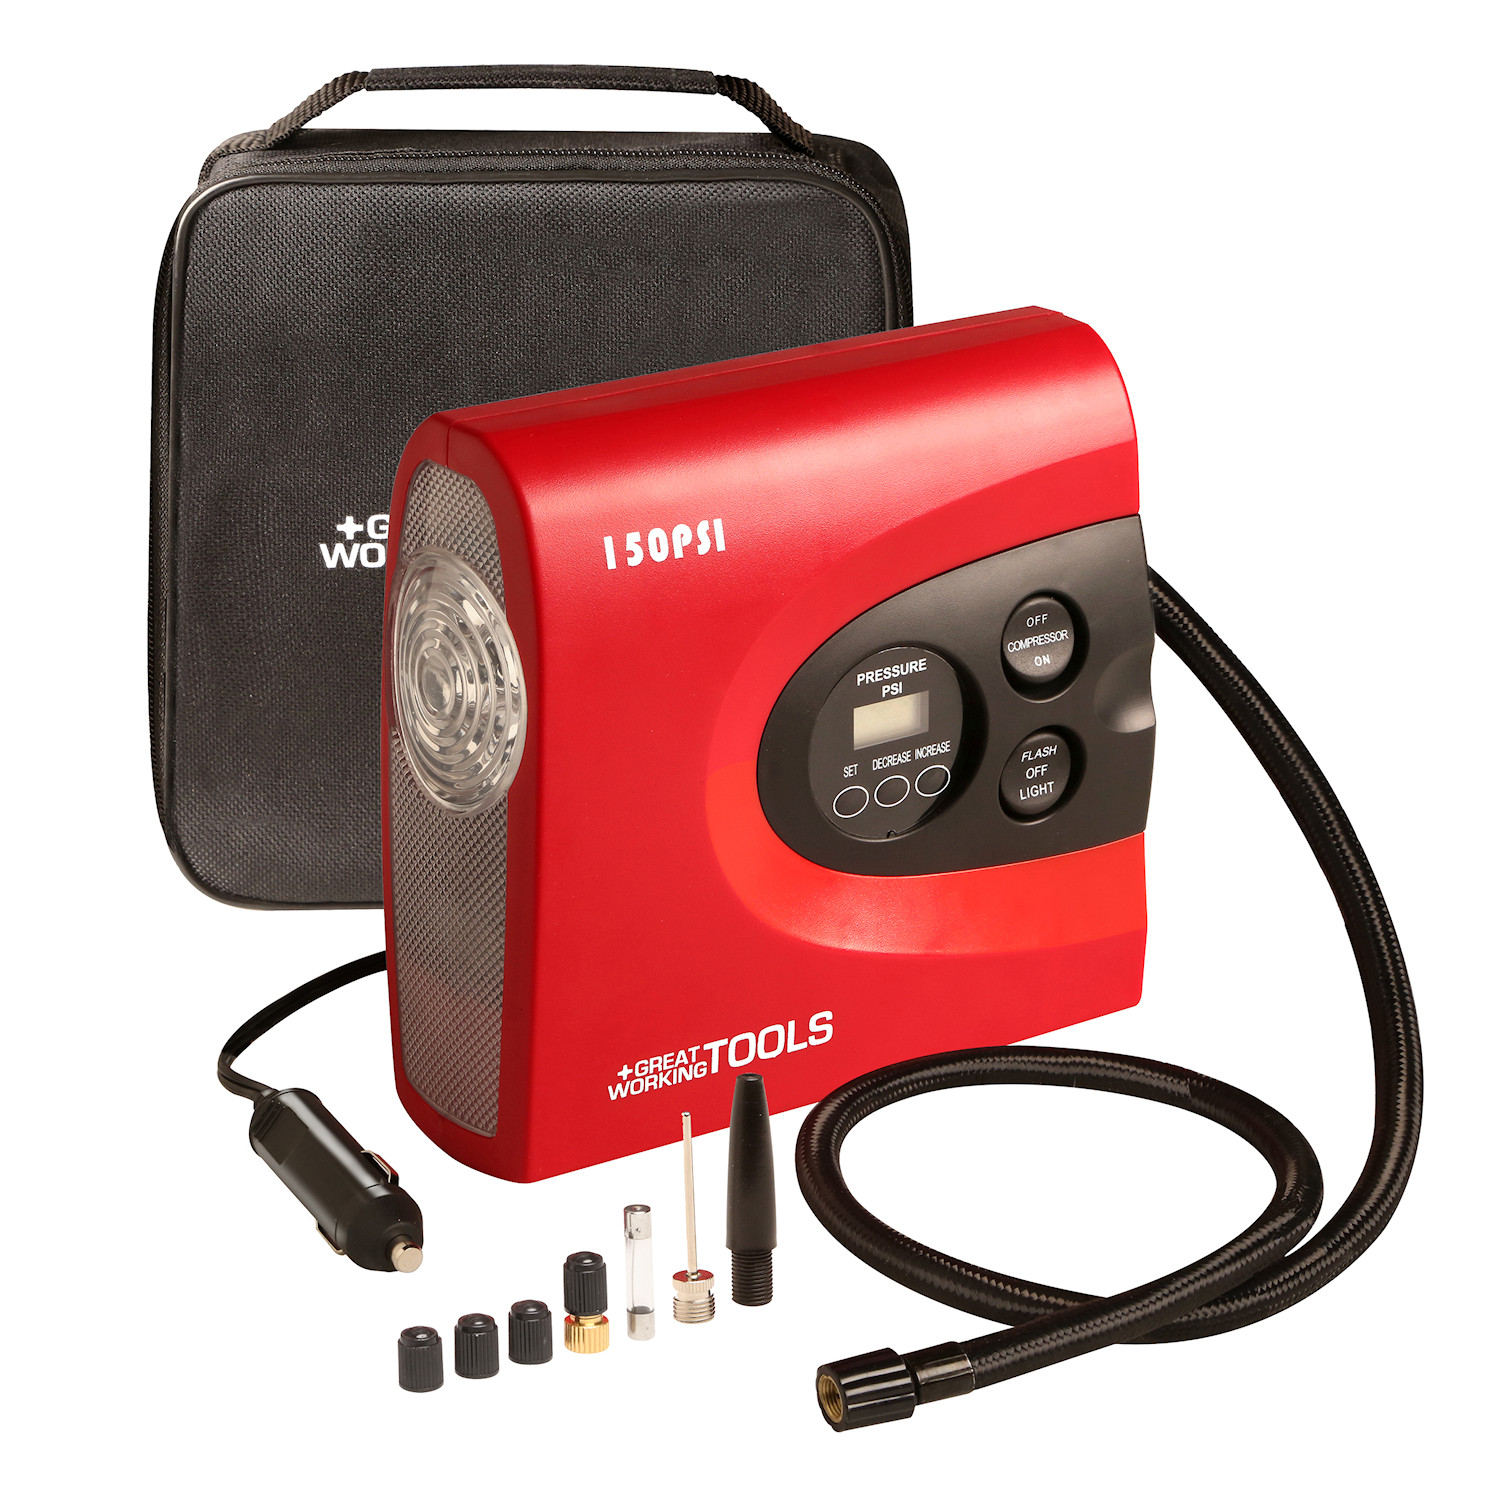 Great Working Tools Portable Air Compressor